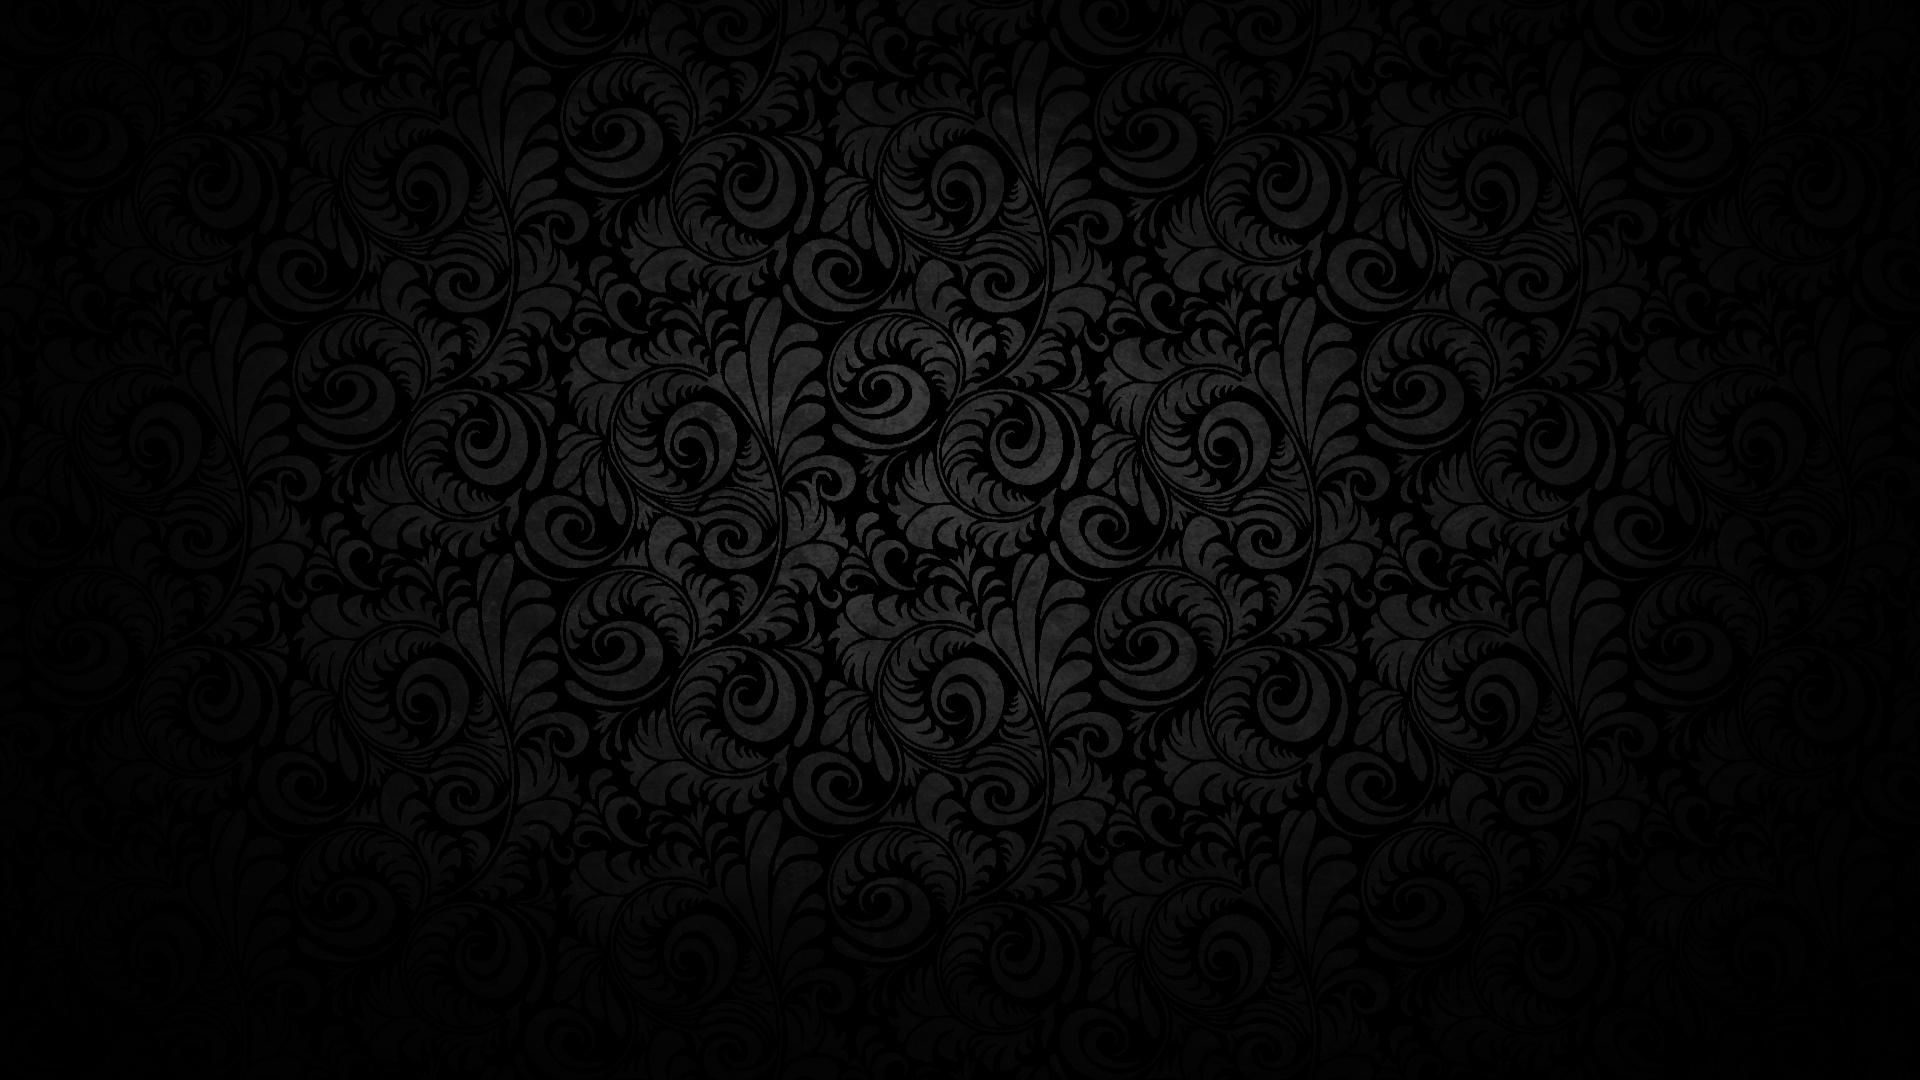 black elegant wallpapers free download dark black wallpaper black background wallpaper black hd wallpaper dark black wallpaper black background